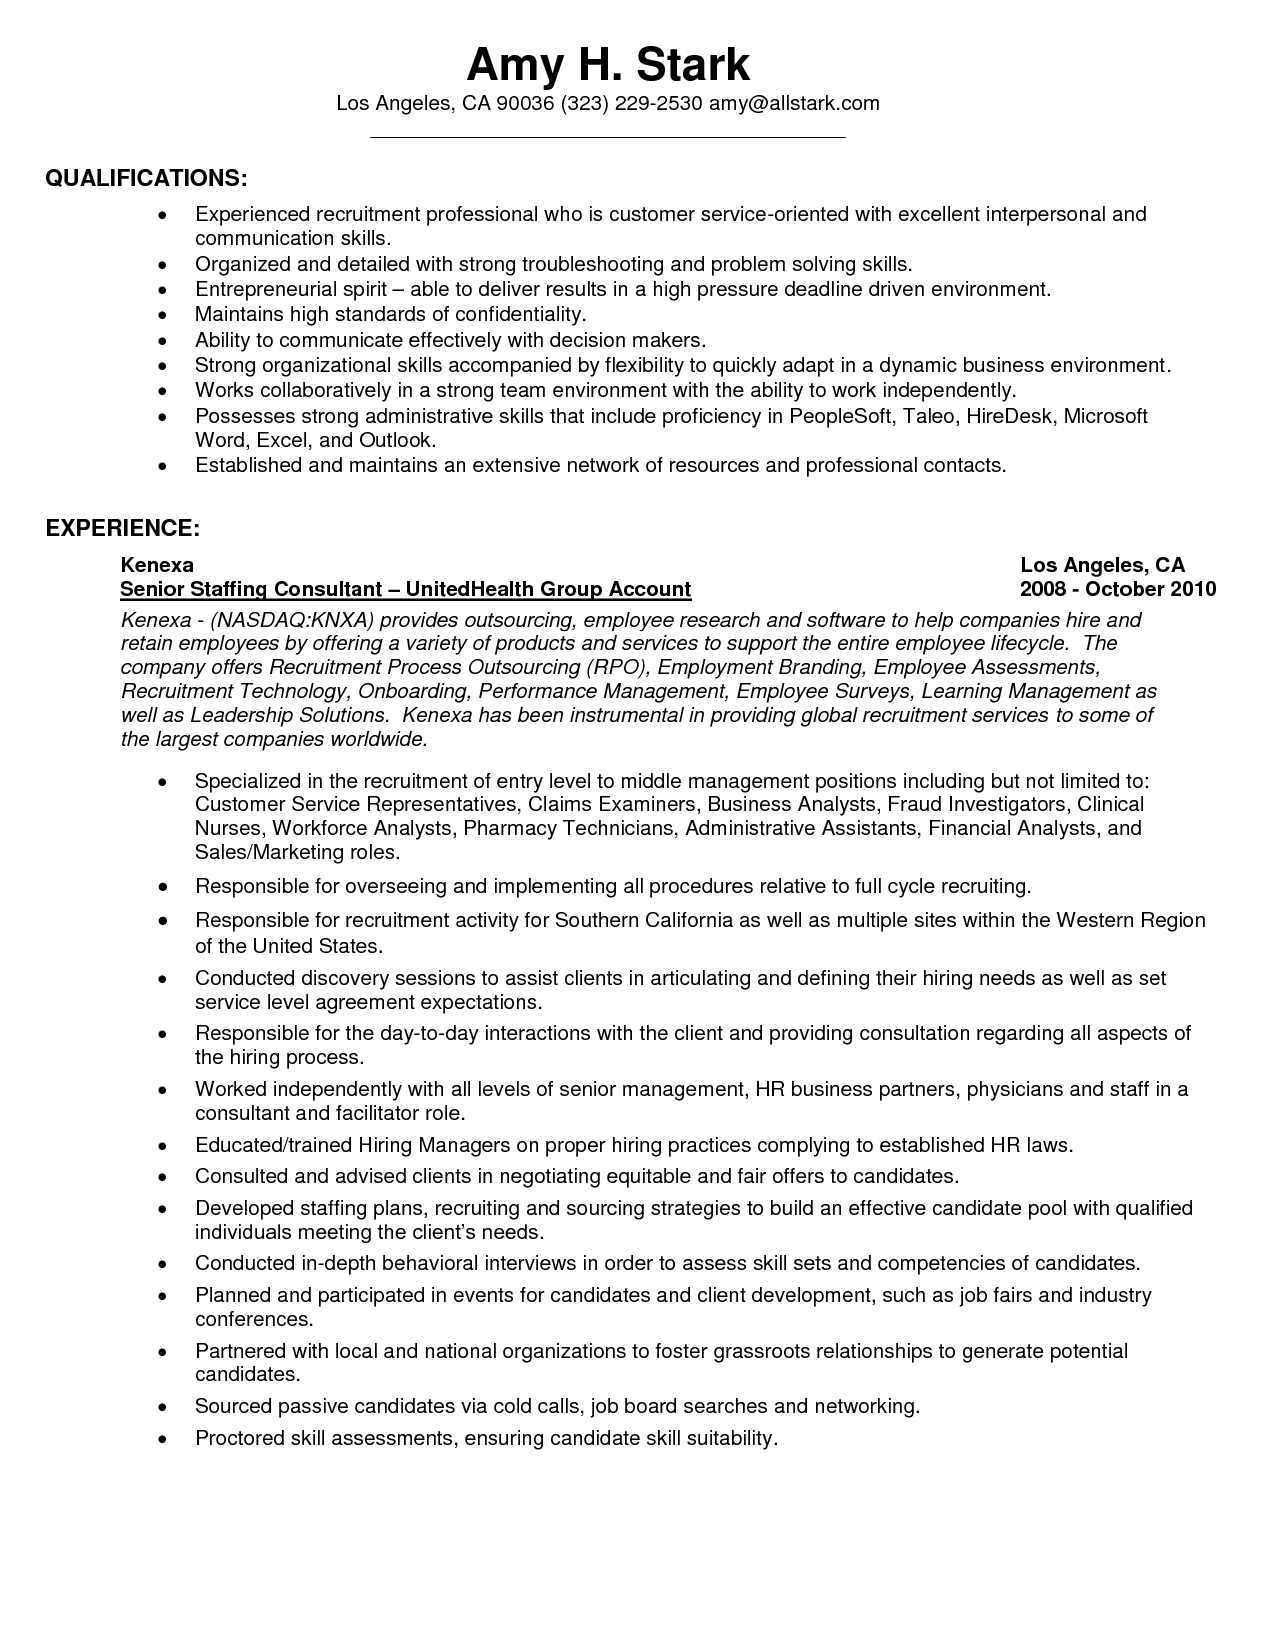 Sample Resume  Sample Resume Skills